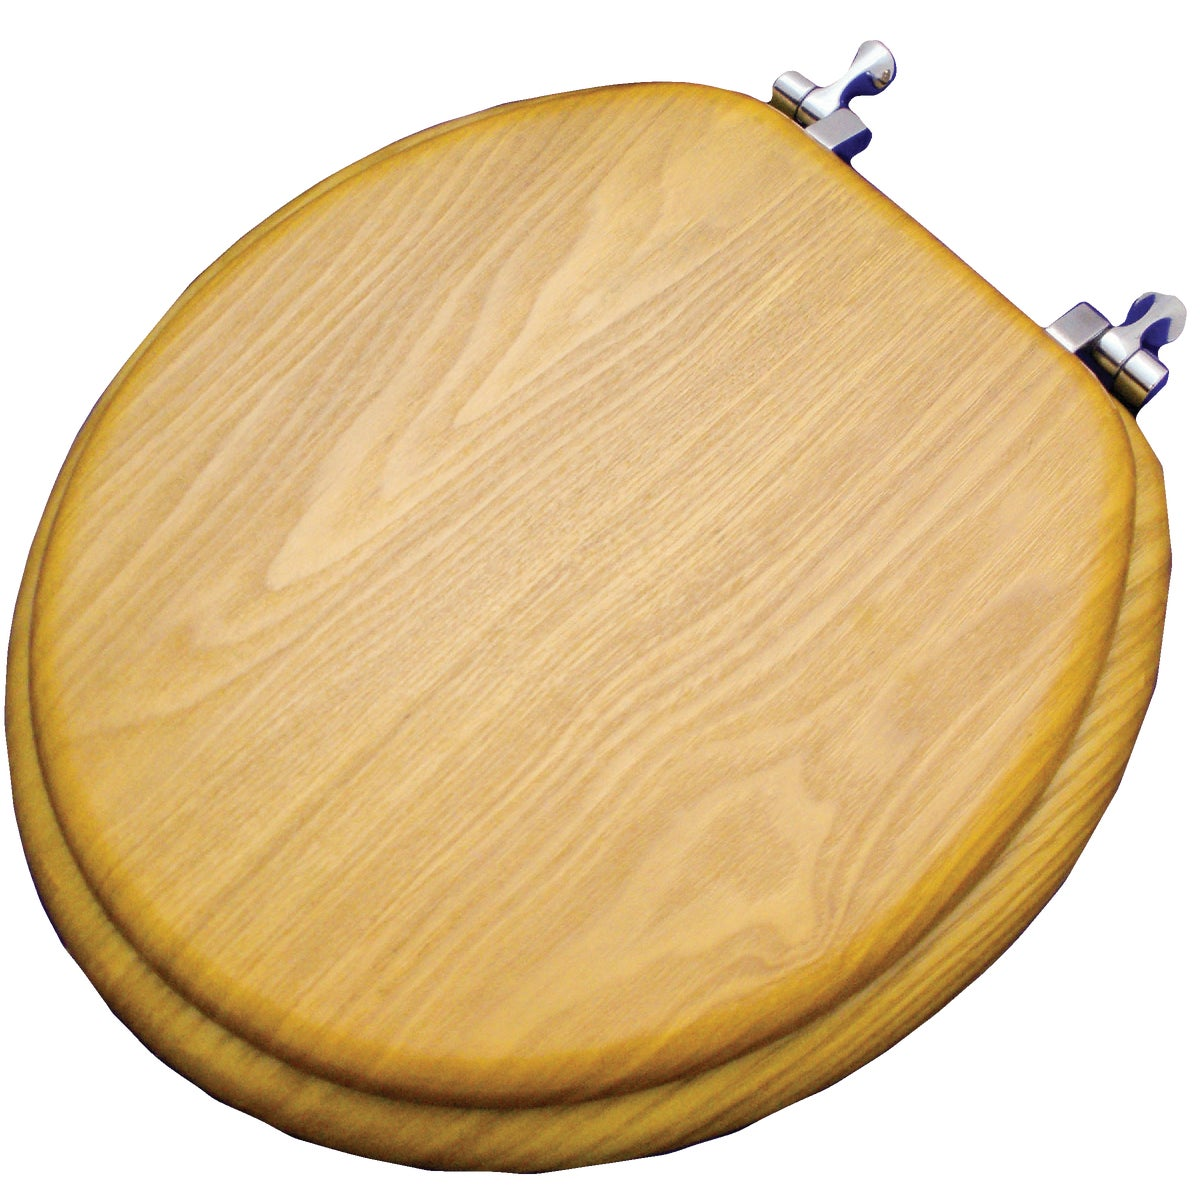 OAK VENEER ROUND SEAT - WMS-17-V by Do it Best